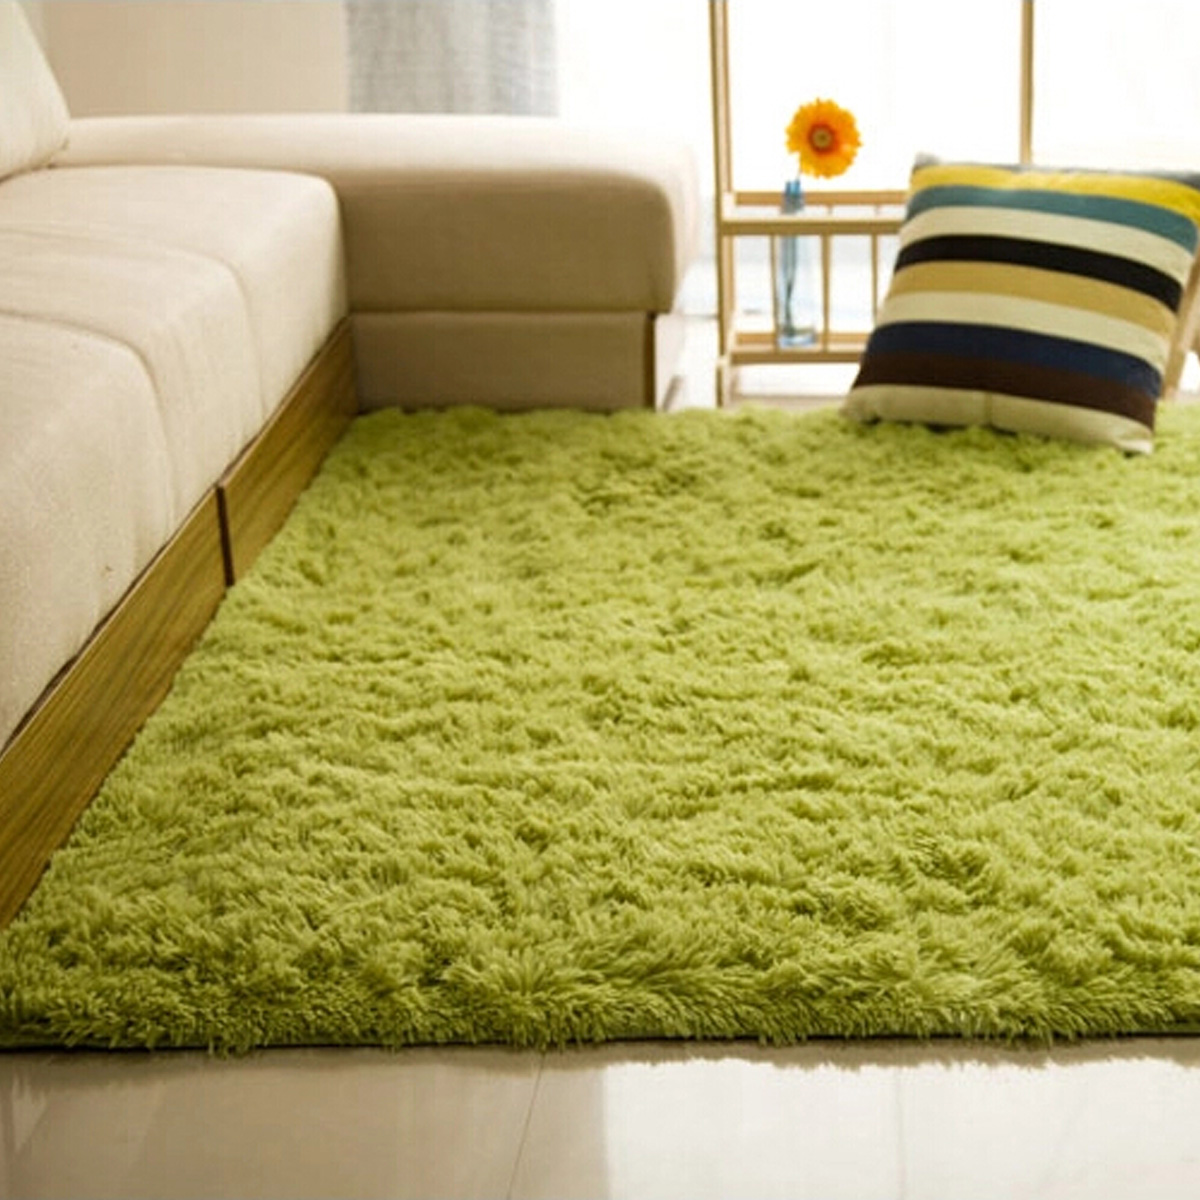 48x32 Inch Modern Soft Fluffy Floor Rug Anti Skid Shag Shaggy Area